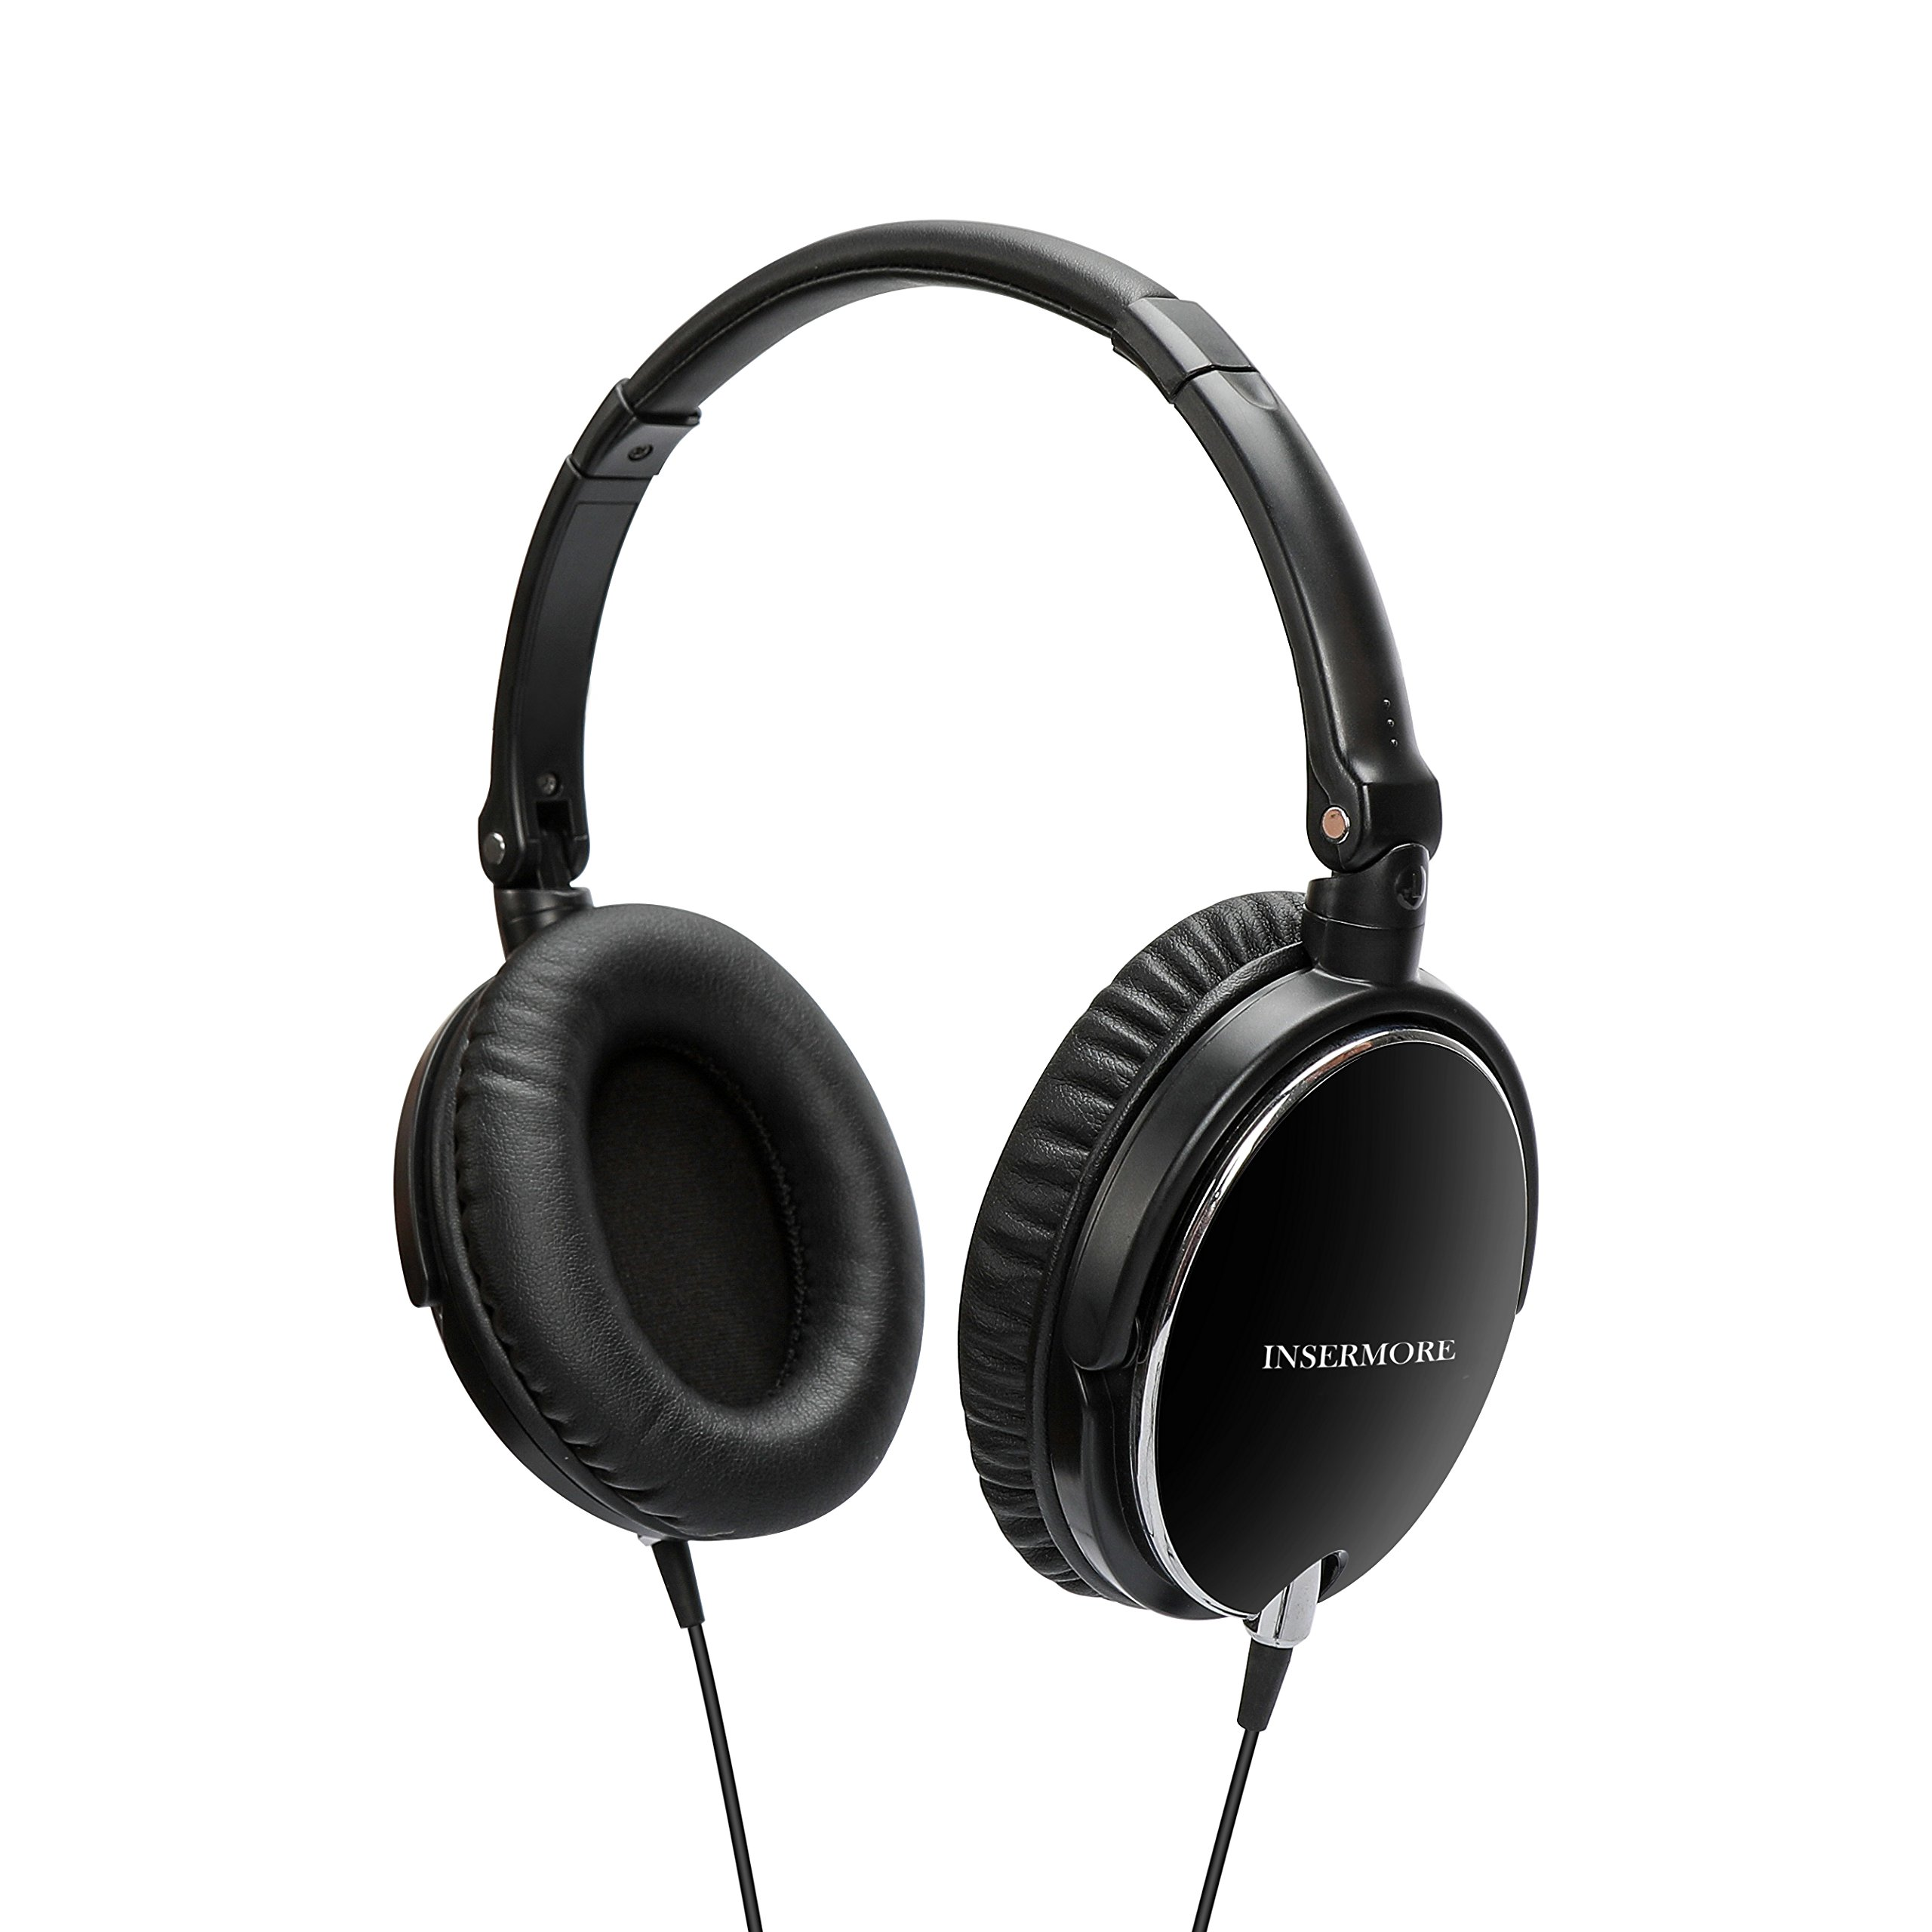 Active Noise Cancelling Headphones, INSERMORE AN01 Hi-fi Stereo over Ear Headsets with Inline Mic, Foldable Travel Earphones for iPhone/Android/PC with free Carry Case-Black